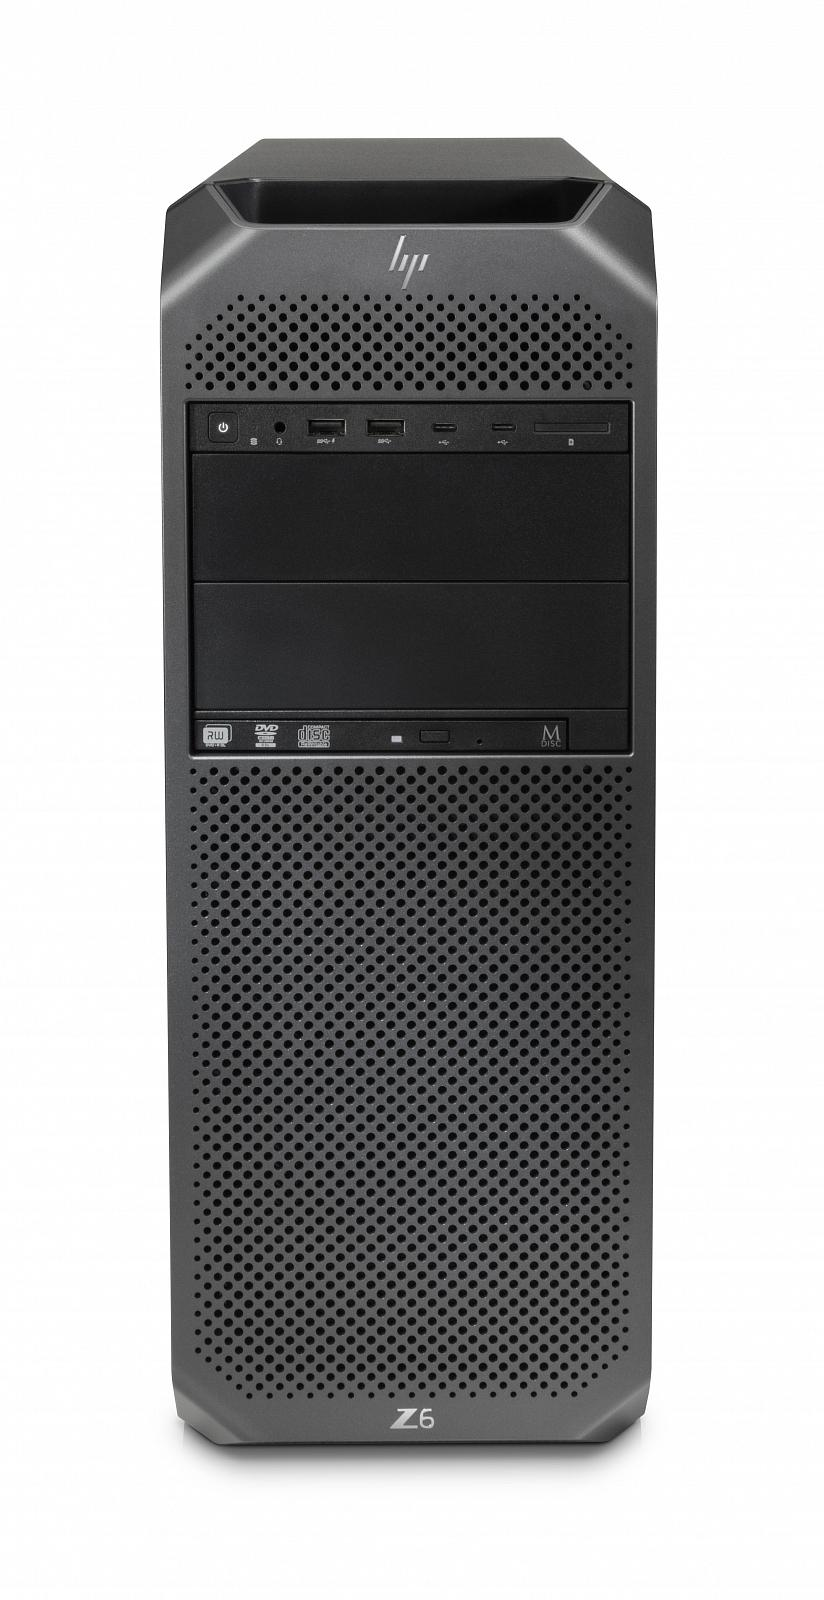 Купить Компьютер HP Z6 G4 Workstation (2WU46EA) фото 1